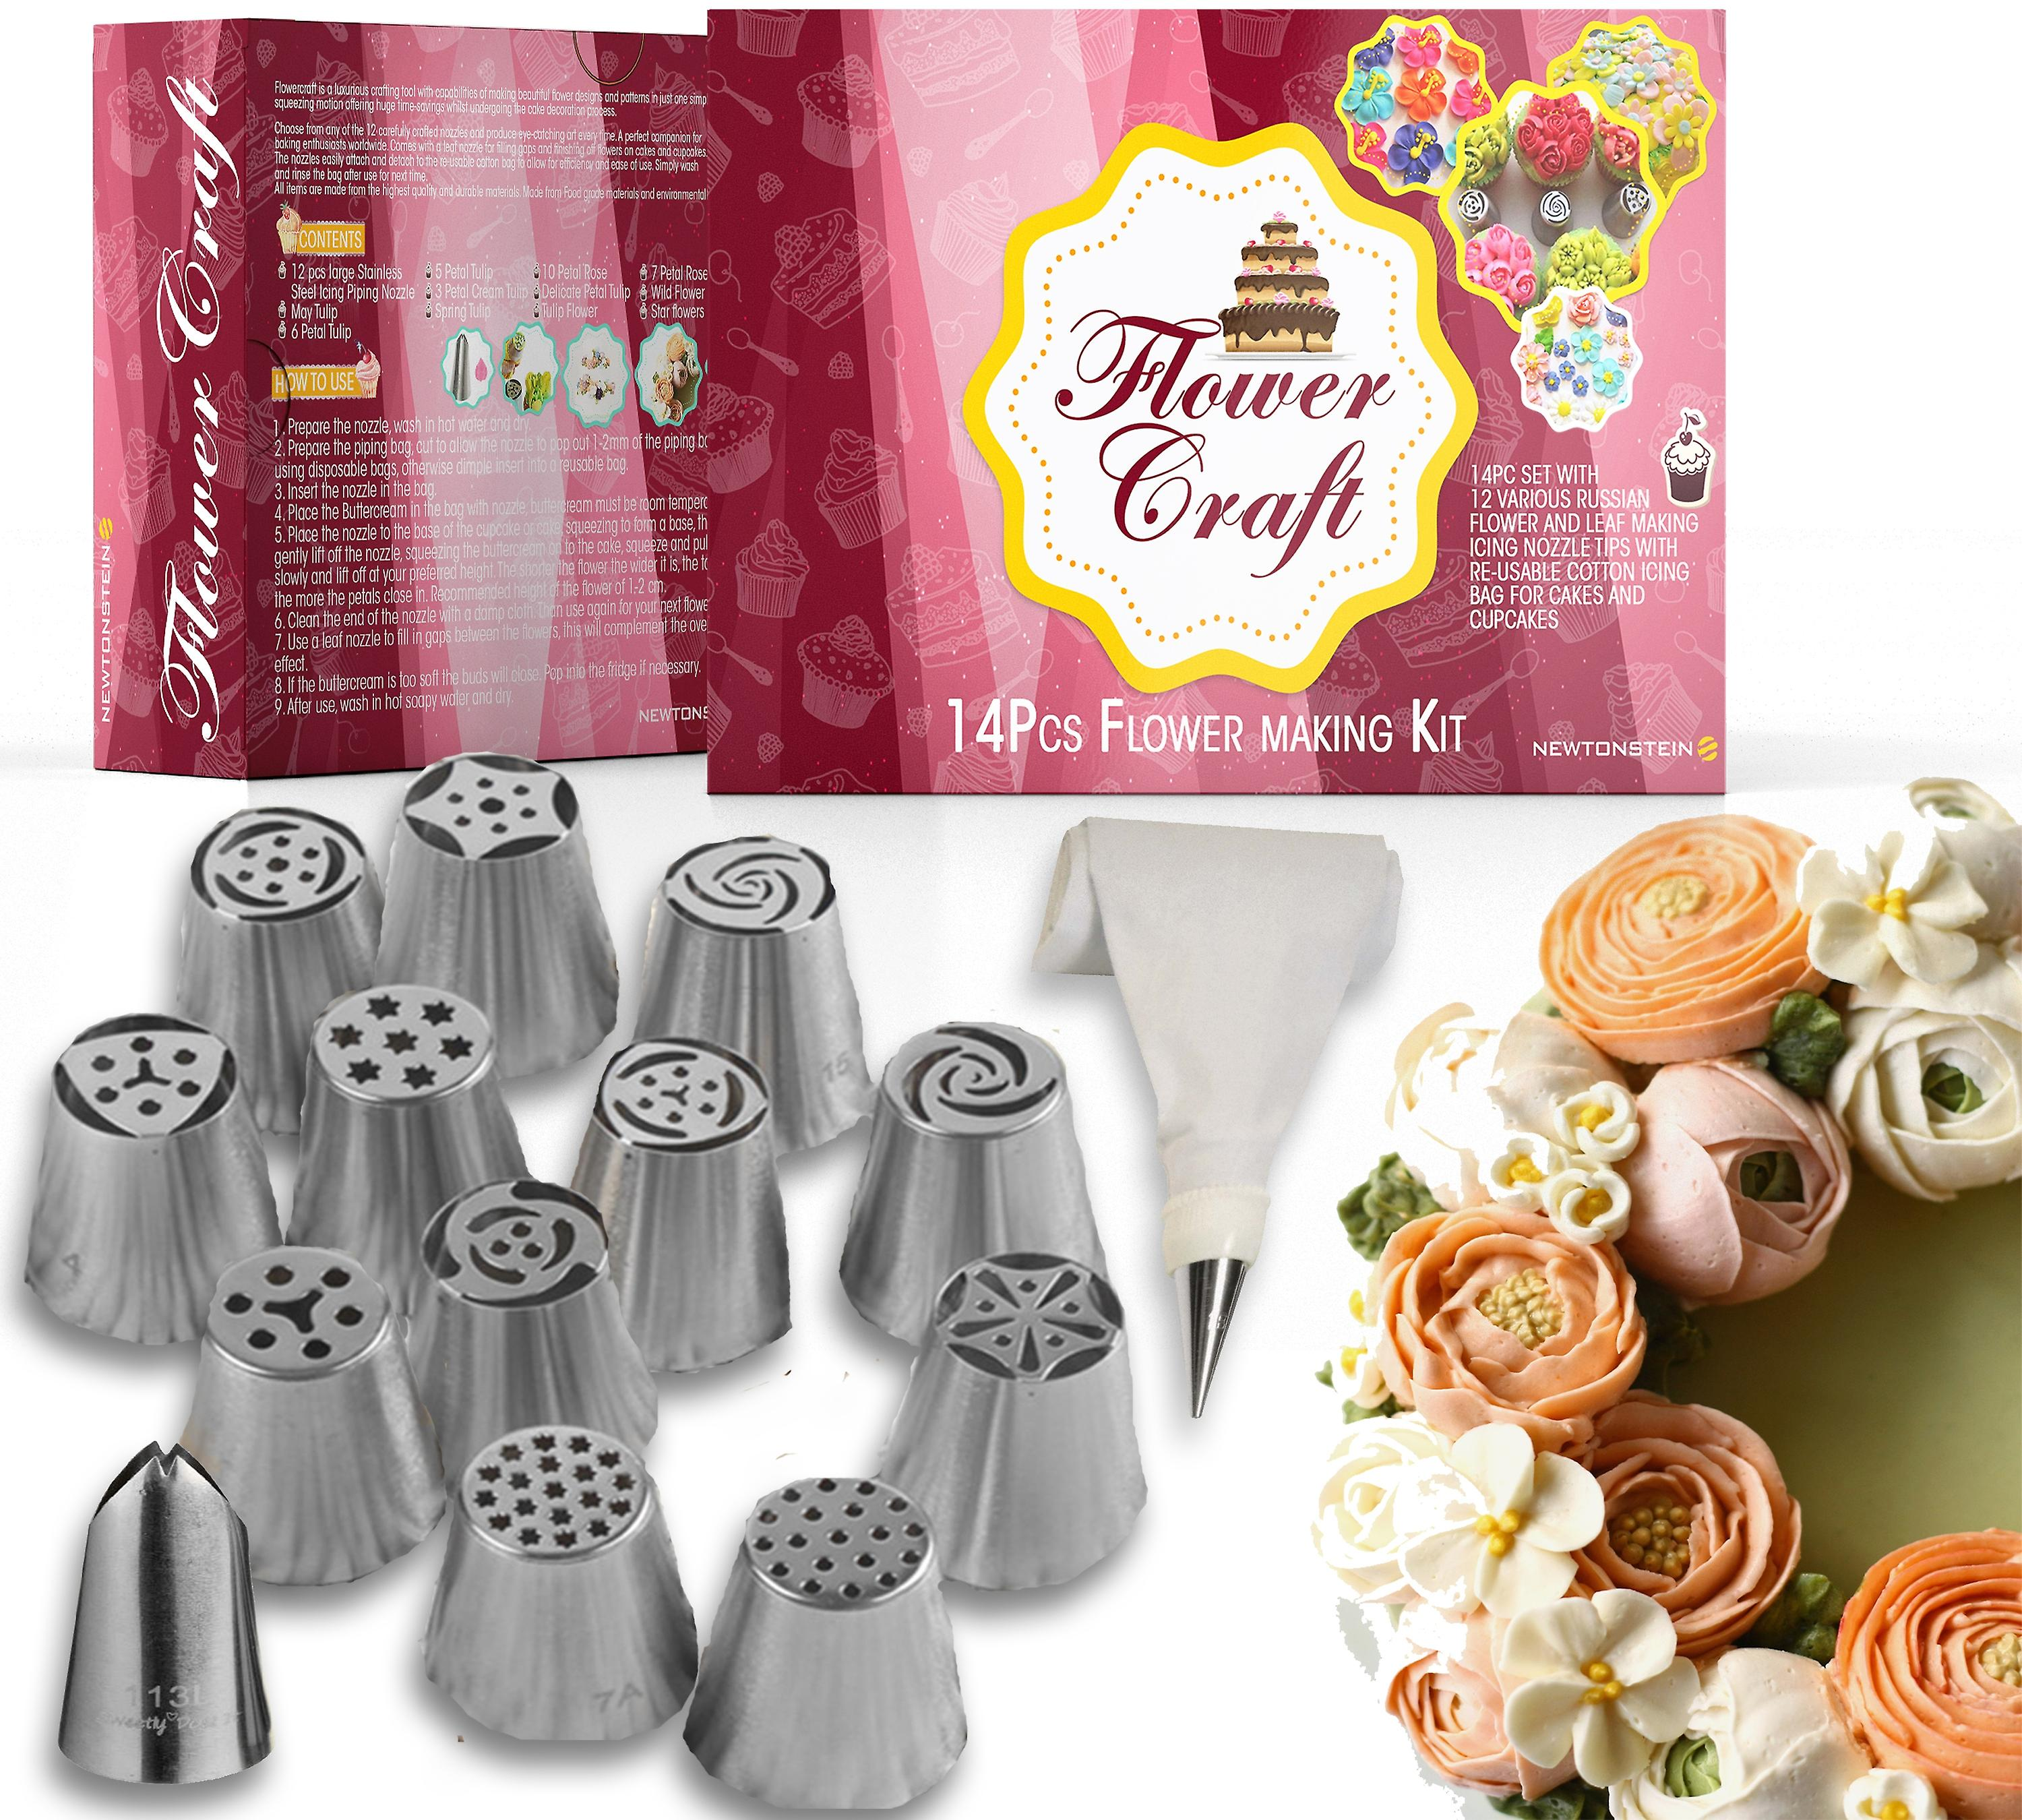 FlowerCraft - 17pc Set with 12 Various Russian Flower and Leaf Making Icing Nozzle Tips with 2 X Re-usable Cotton Icing Bags for Cakes and Cupcakes